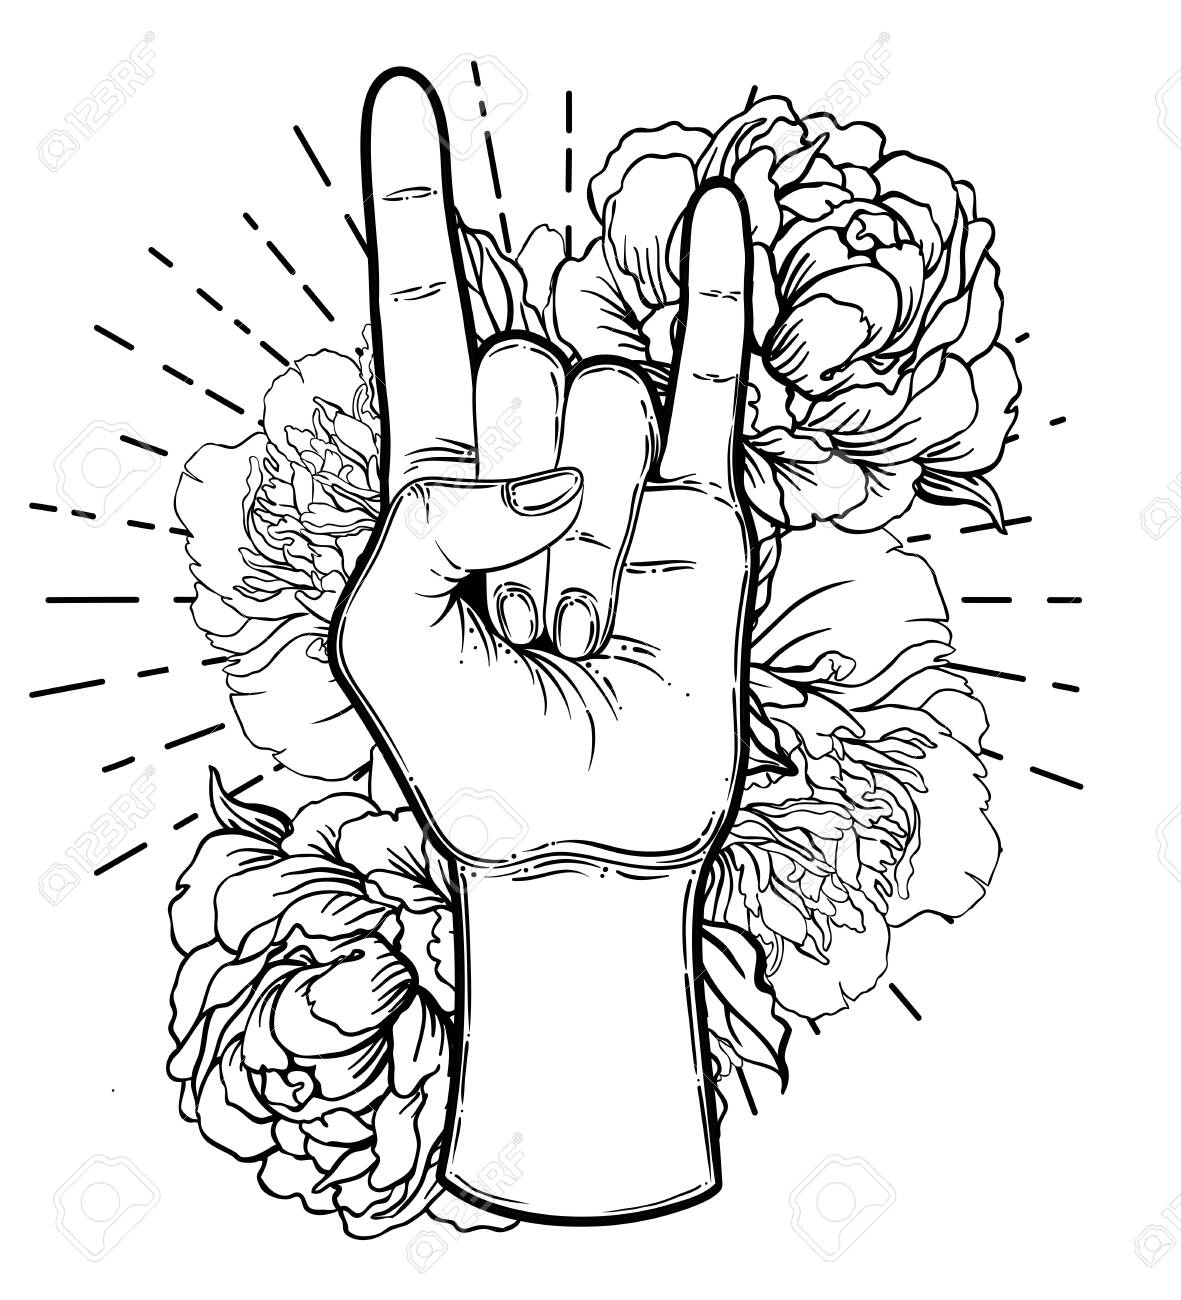 Rock and roll sign. Gesture of Heavy metal culture.